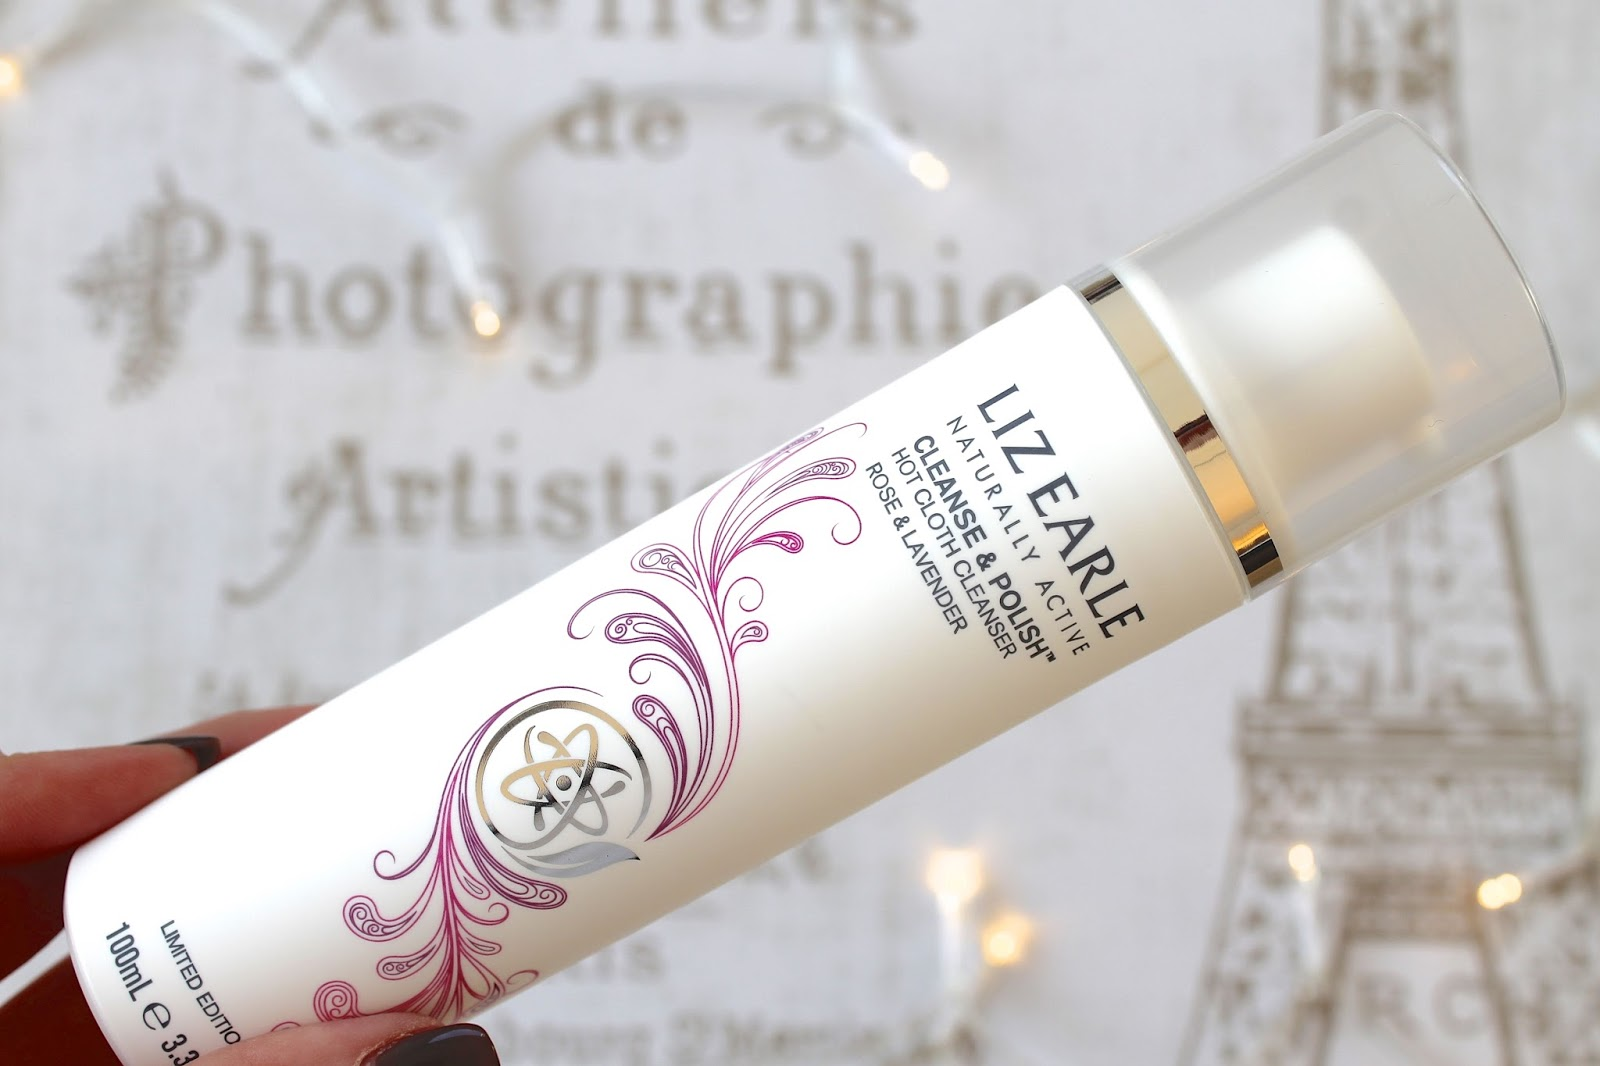 Liz Earle Cleanse & Polish blog review